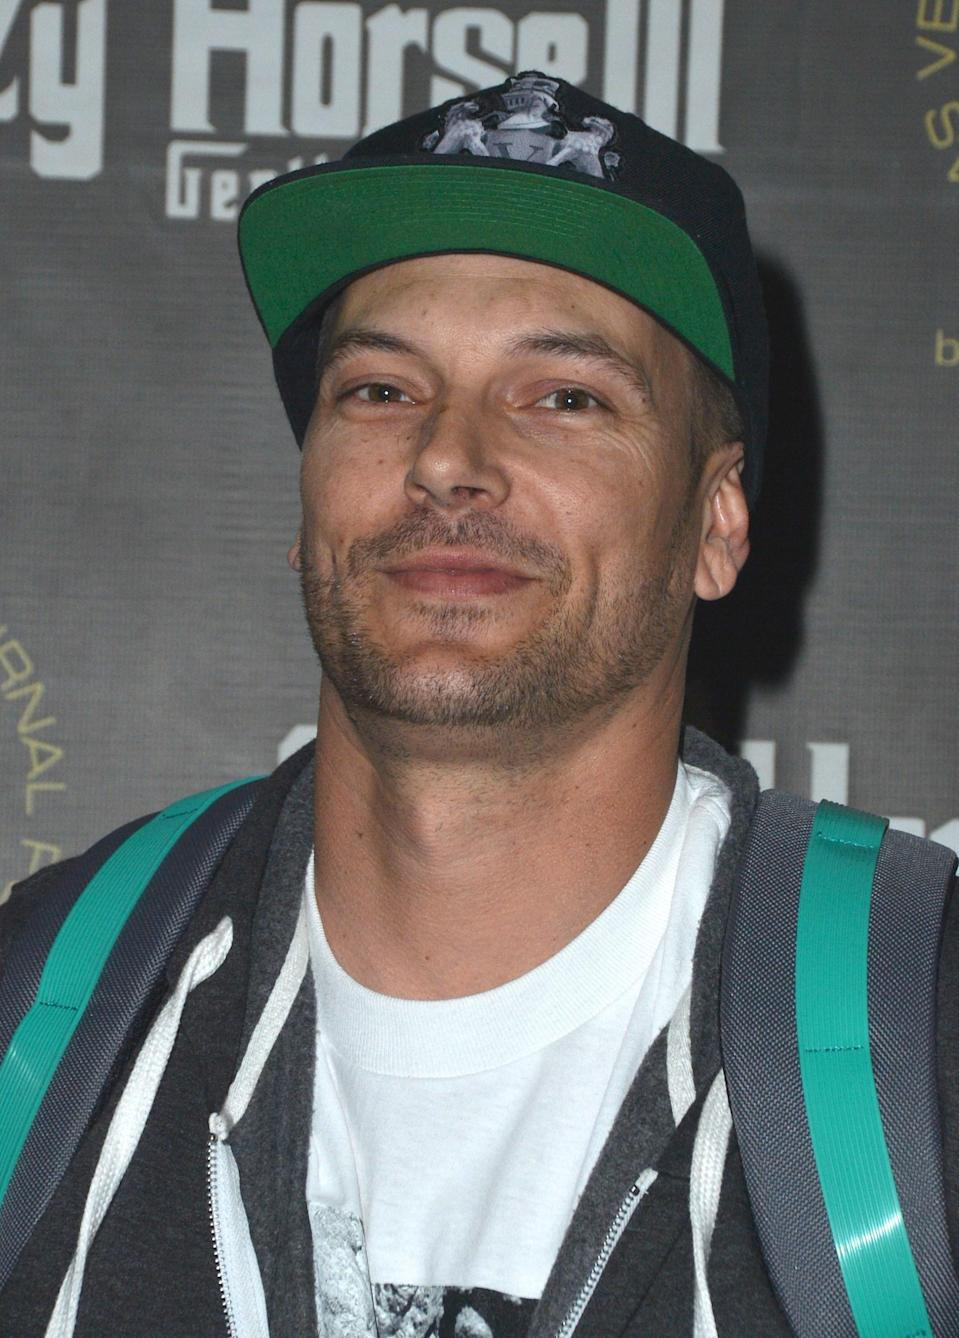 Kevin Federline arrives at the Crazy Horse III Gentlemen's Club to celebrate his birthday on March 12, 2016 in Las Vegas, Nevada